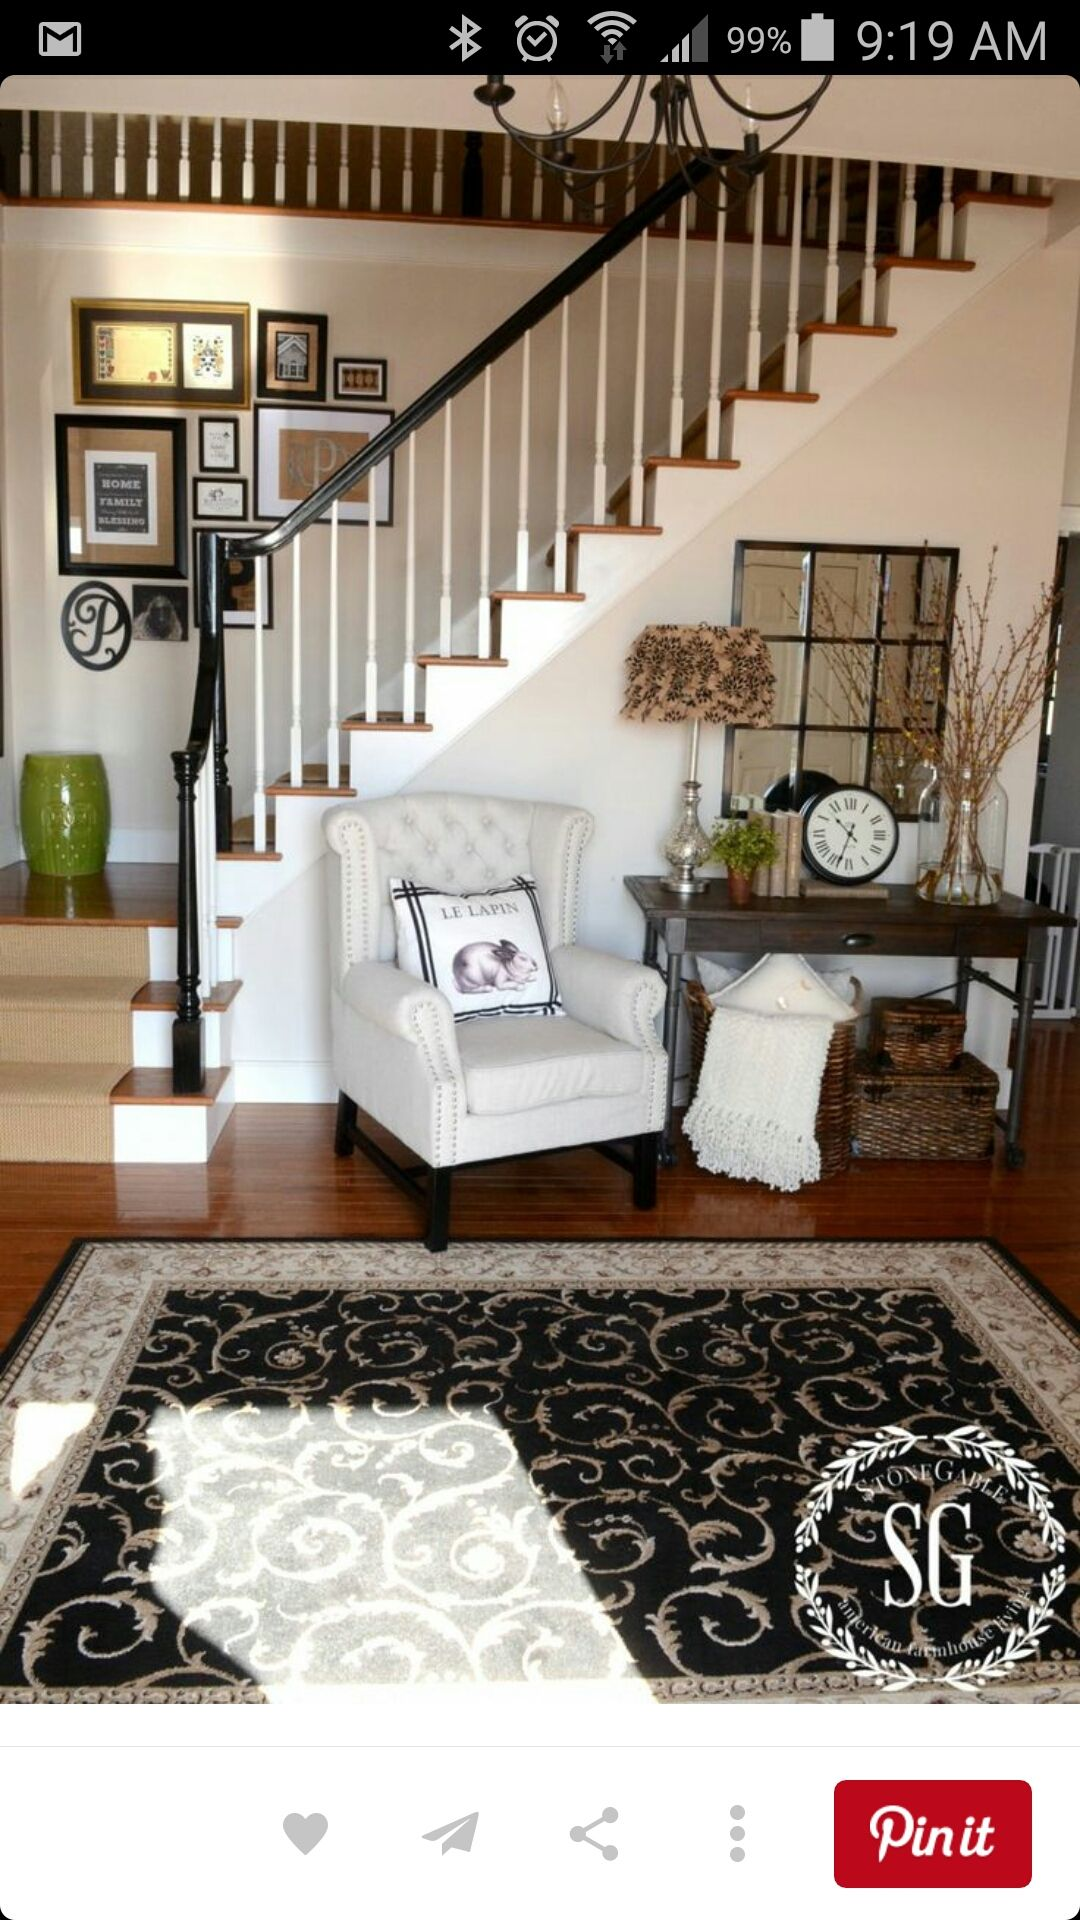 I Like How The Frames Stair Step Like The Stairs Foyer Decorating Home Decor Decorating Rules #step #by #step #decorating #living #room